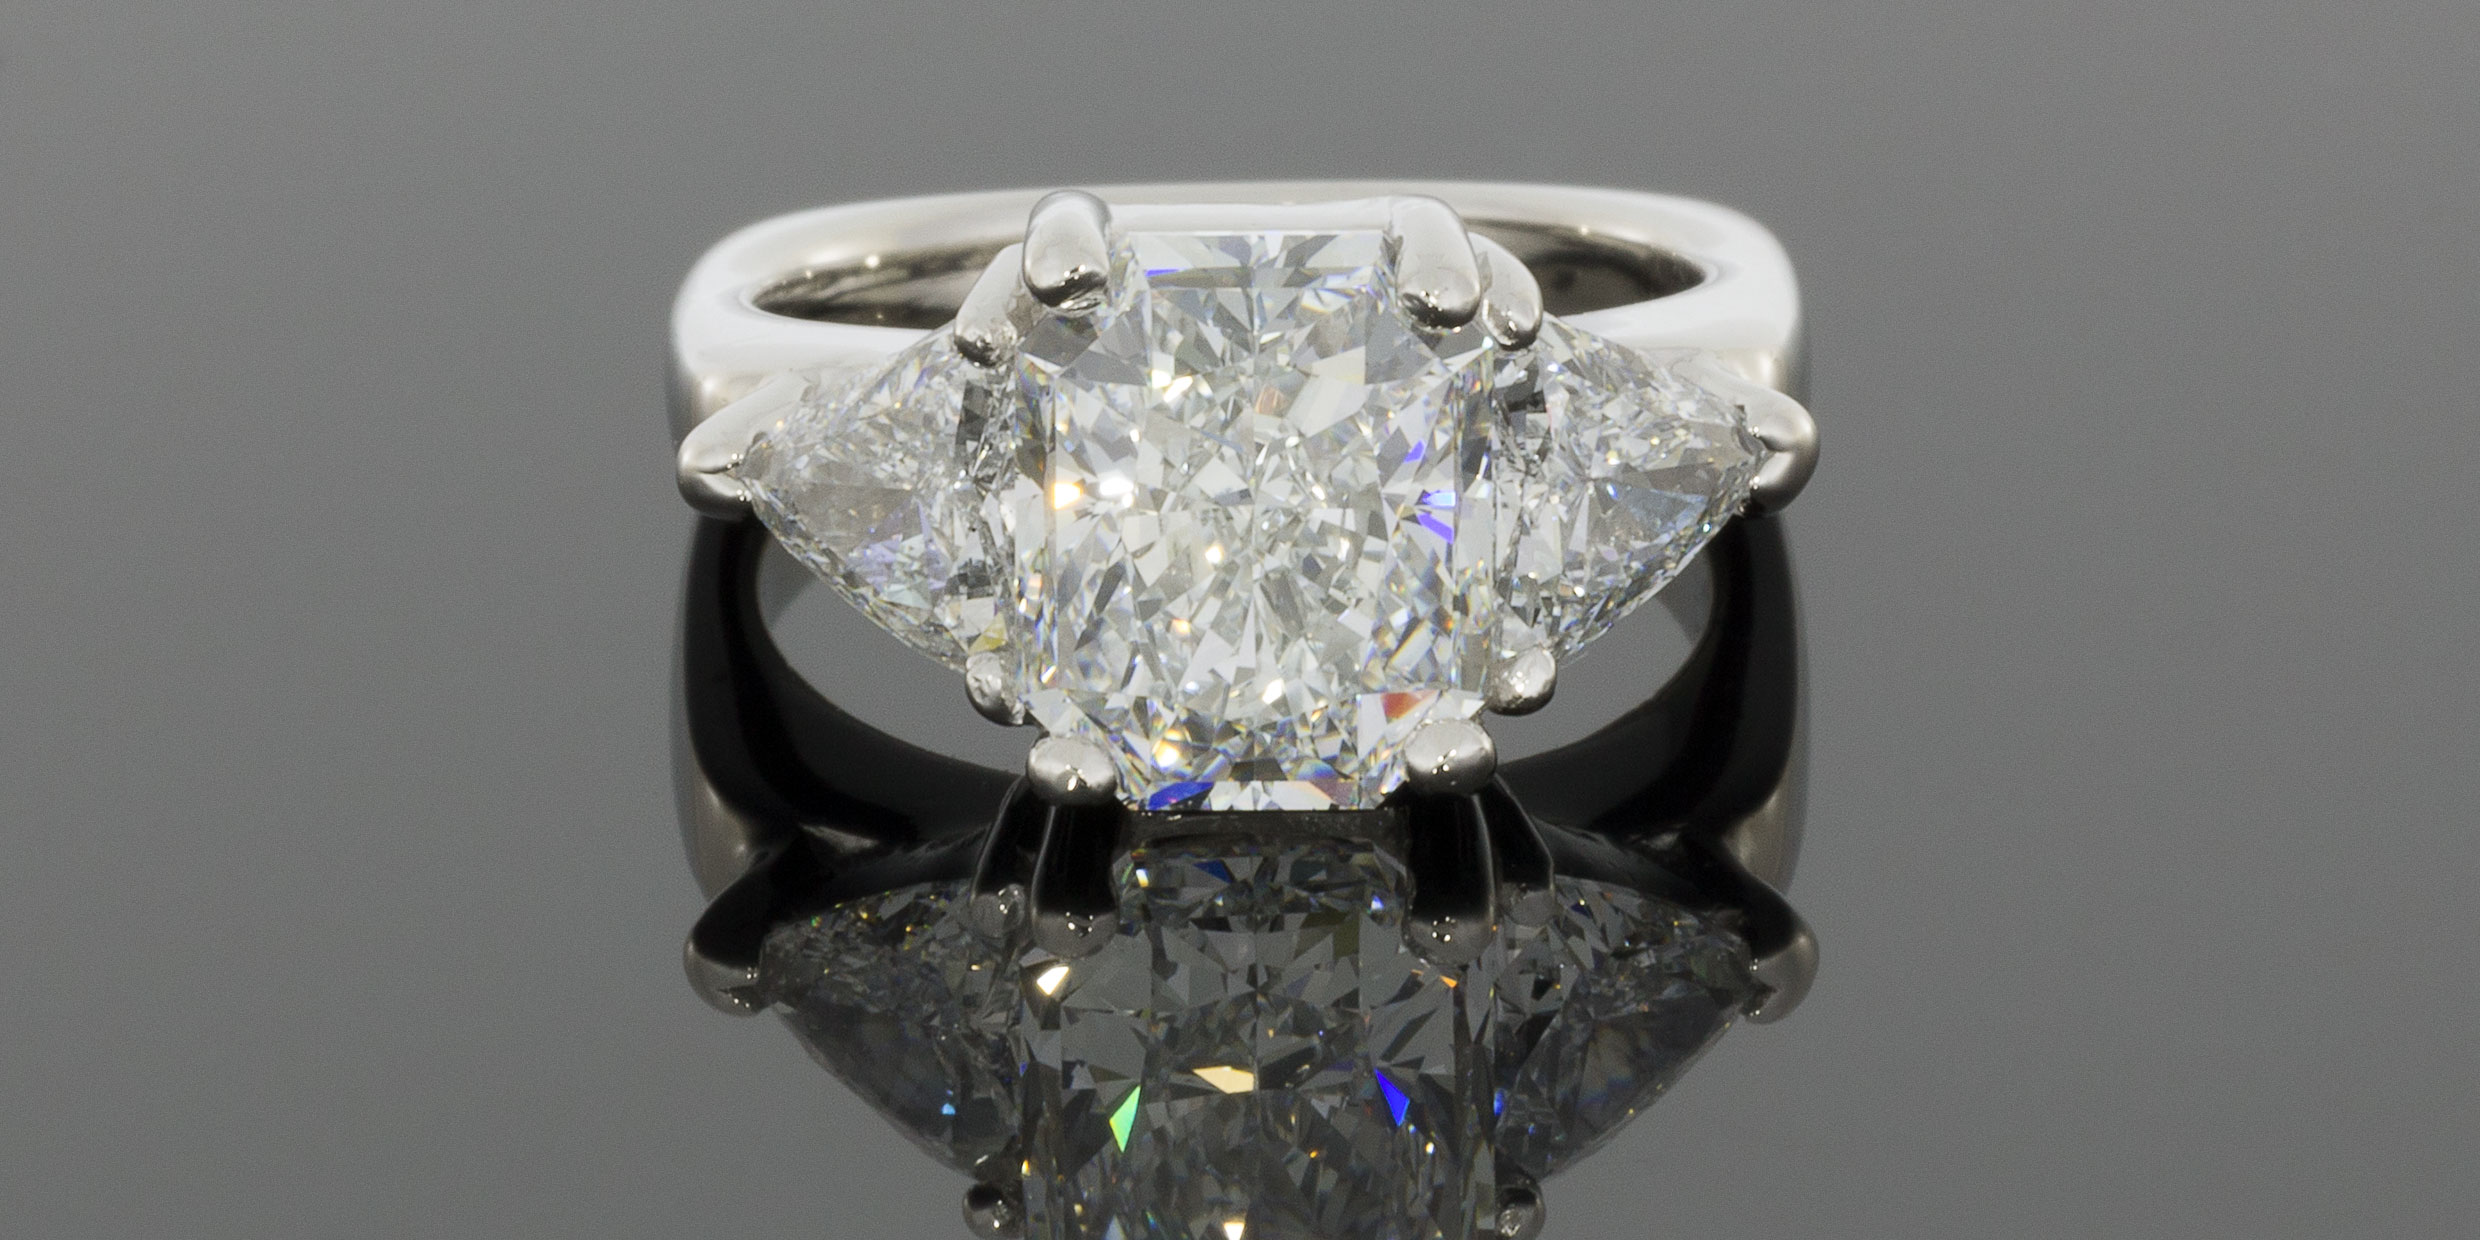 Diamond Banc made a cash offer of $40,000 and a consignment offer of $55,00 for this 5.09CTW diamond ring.